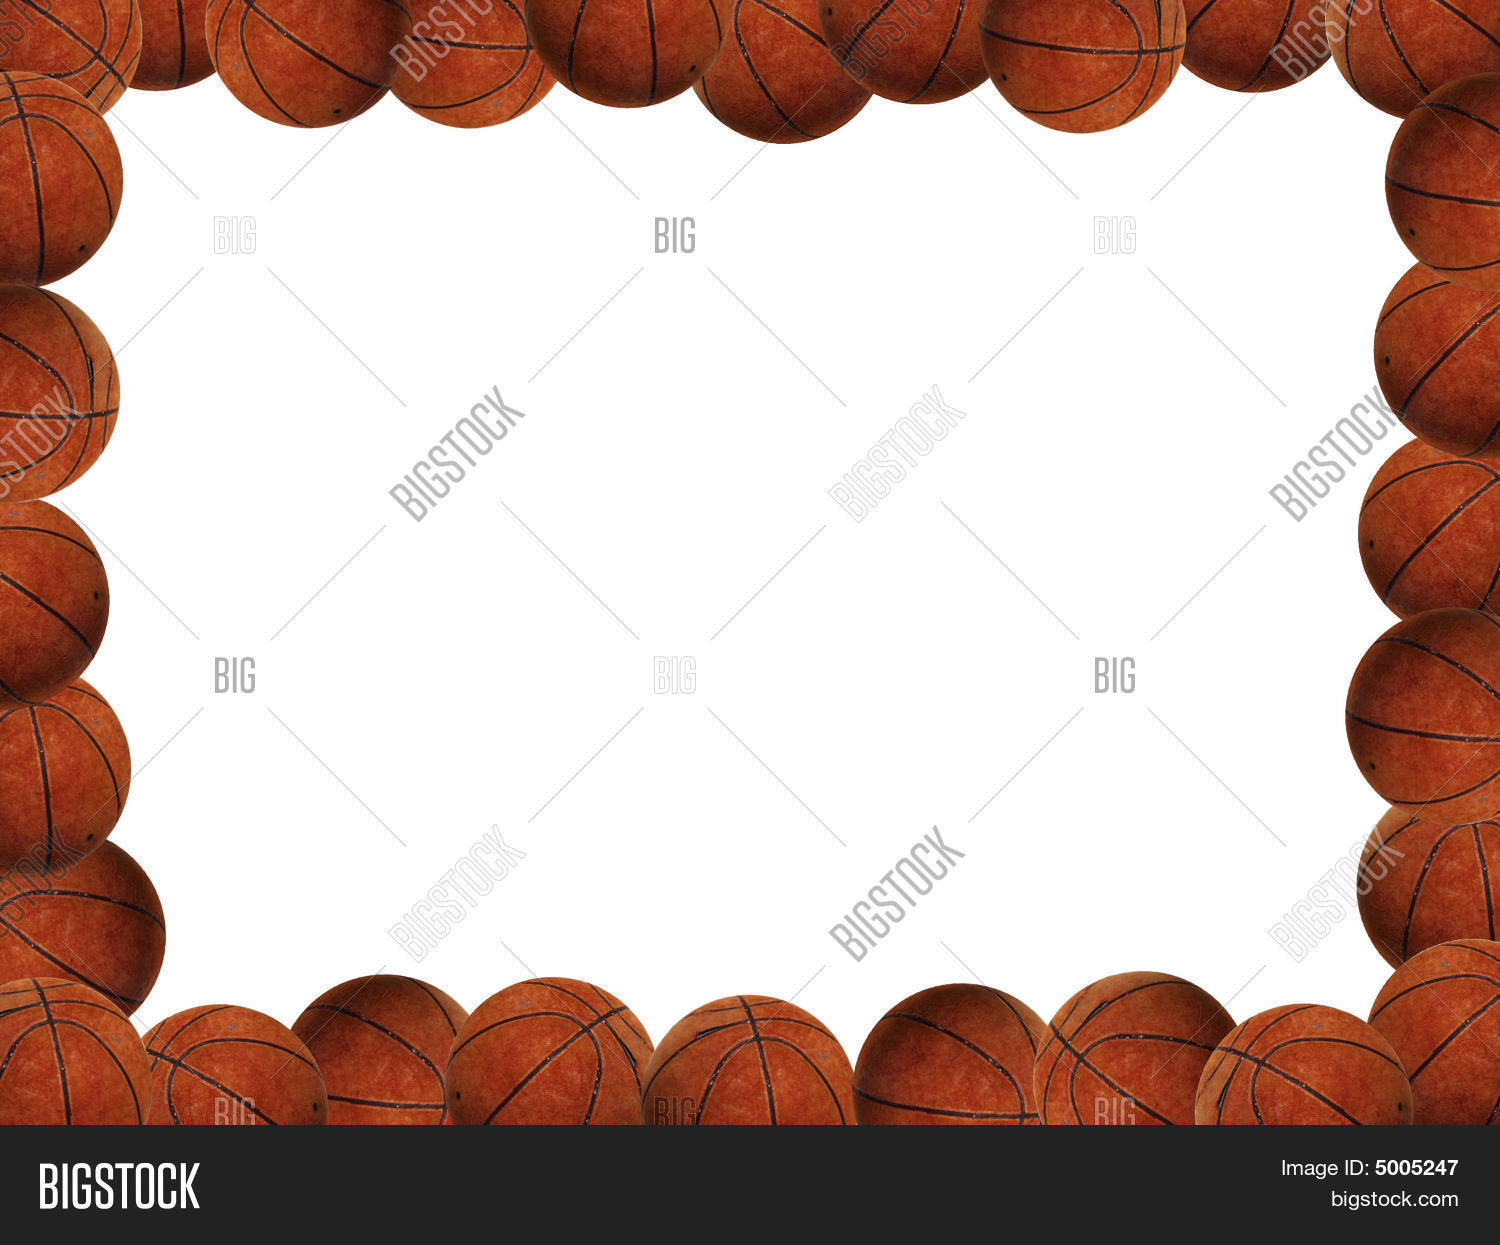 Basketball Frame Image & Photo (Free Trial) | Bigstock